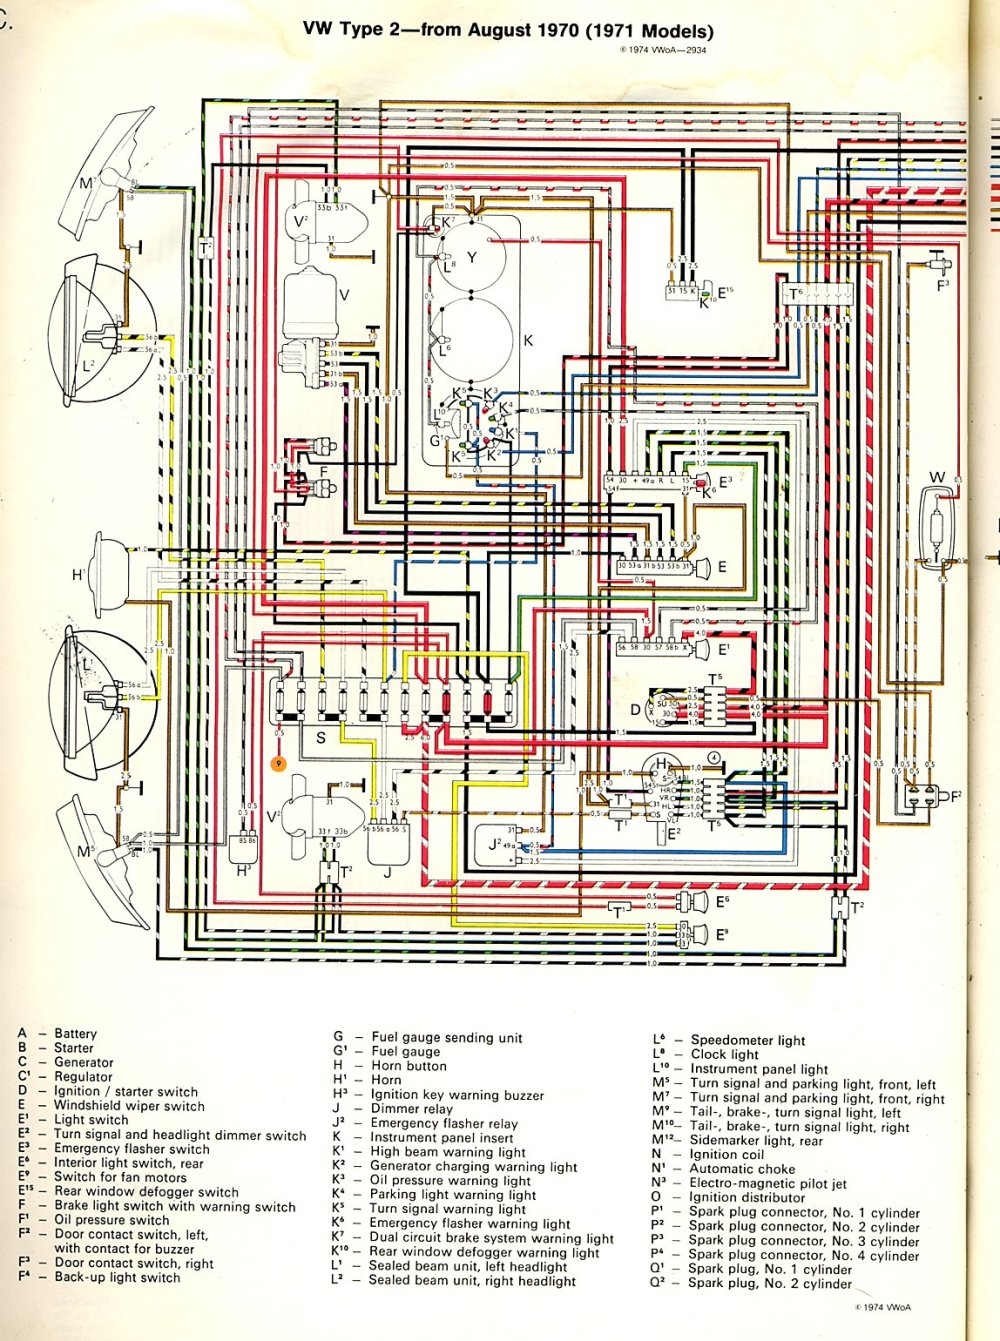 medium resolution of thesamba com type 2 wiring diagrams volkswagen beetle diagrams 1958 vw type 2 wiring diagram